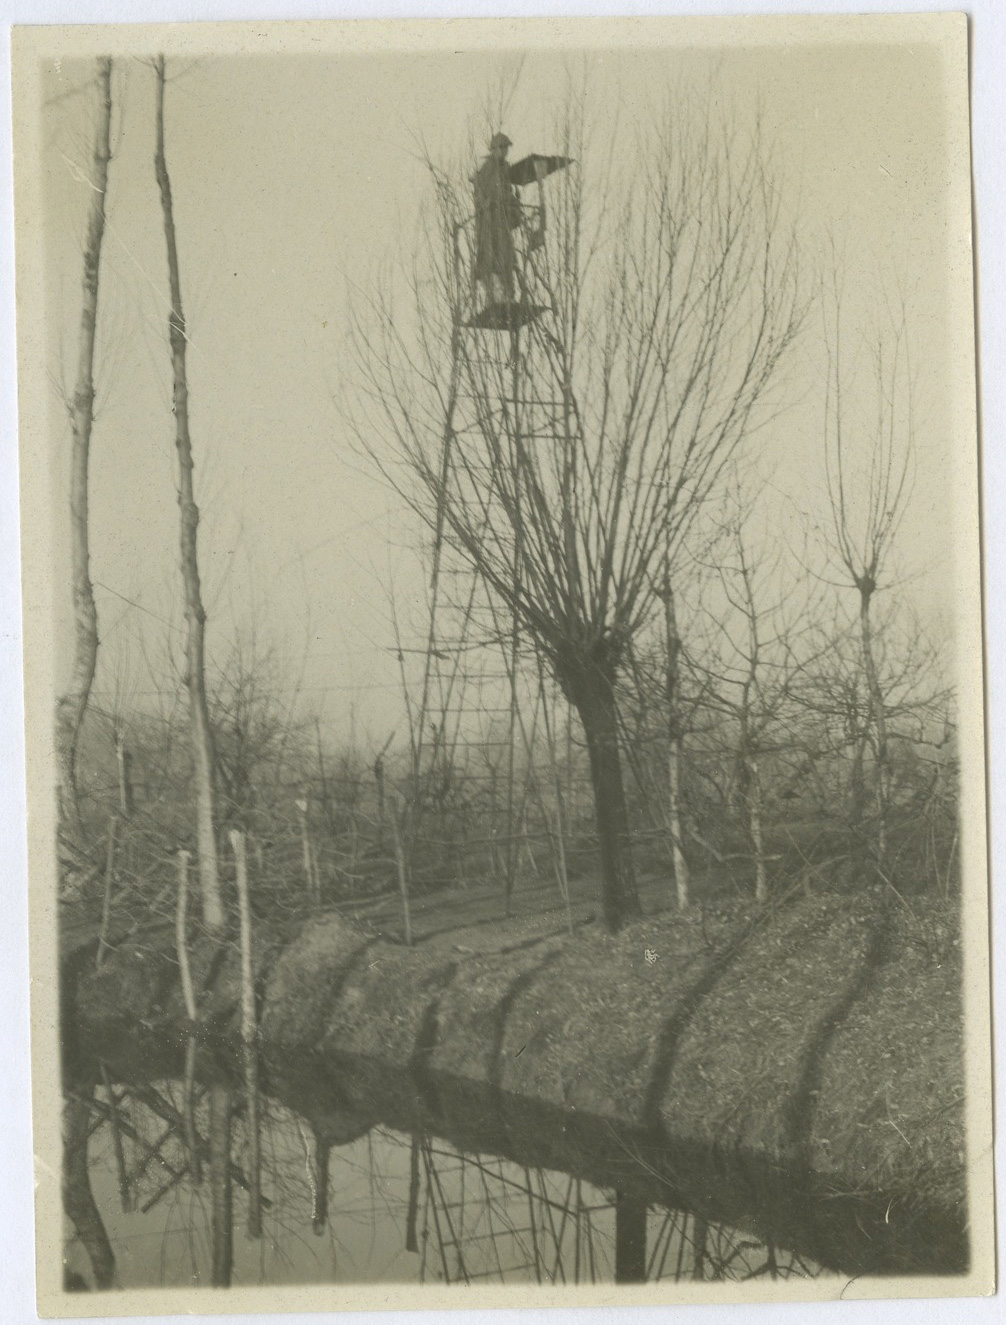 Artillery observation post. The raised position of the tower allowed for a better view of enemy territory, even from zones behind the front line.